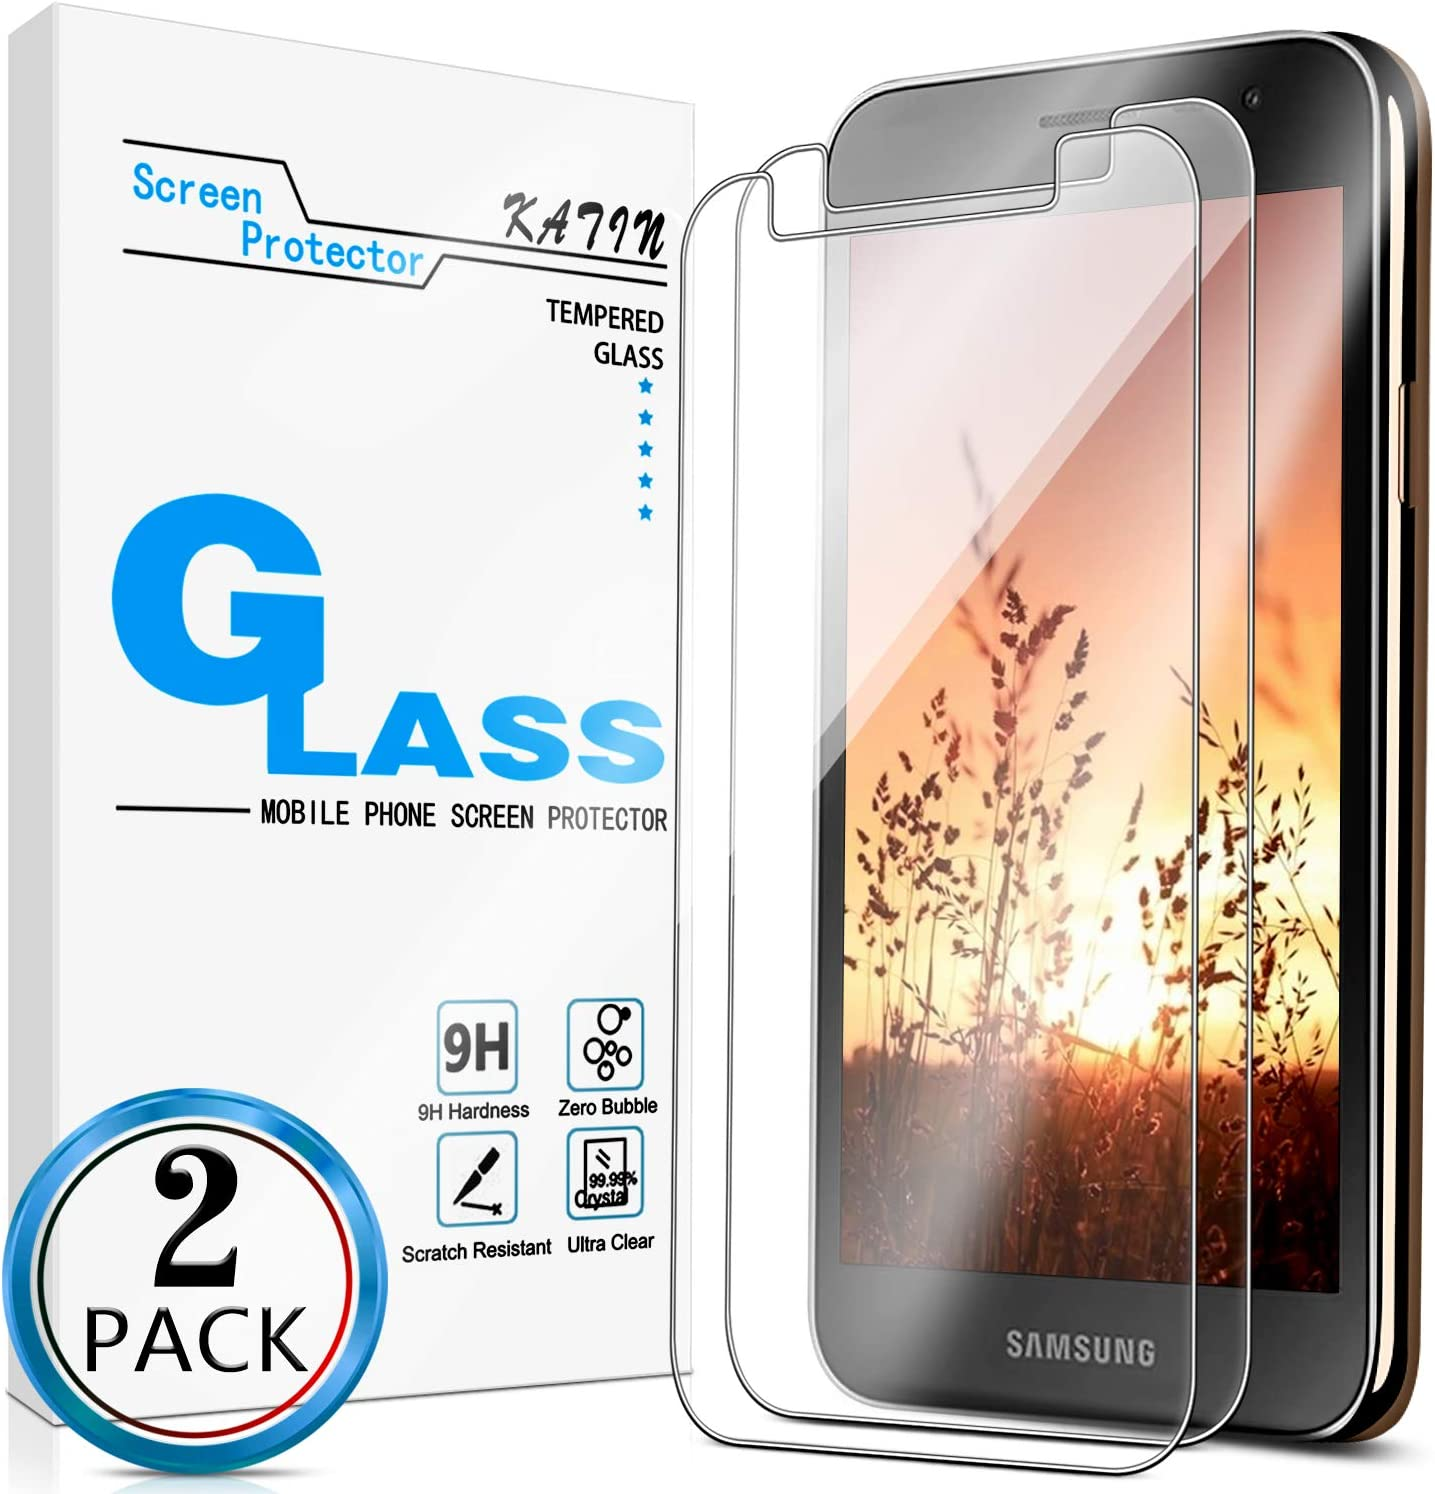 KATIN Galaxy J2 Core Screen Protector - [2-Pack] for Samsung Galaxy J2 Core/ J2 2019/ J2 Pure/ J2 Dash/ J2 Shine Tempered Glass No-Bubble, 9H Hardness, Easy to Install